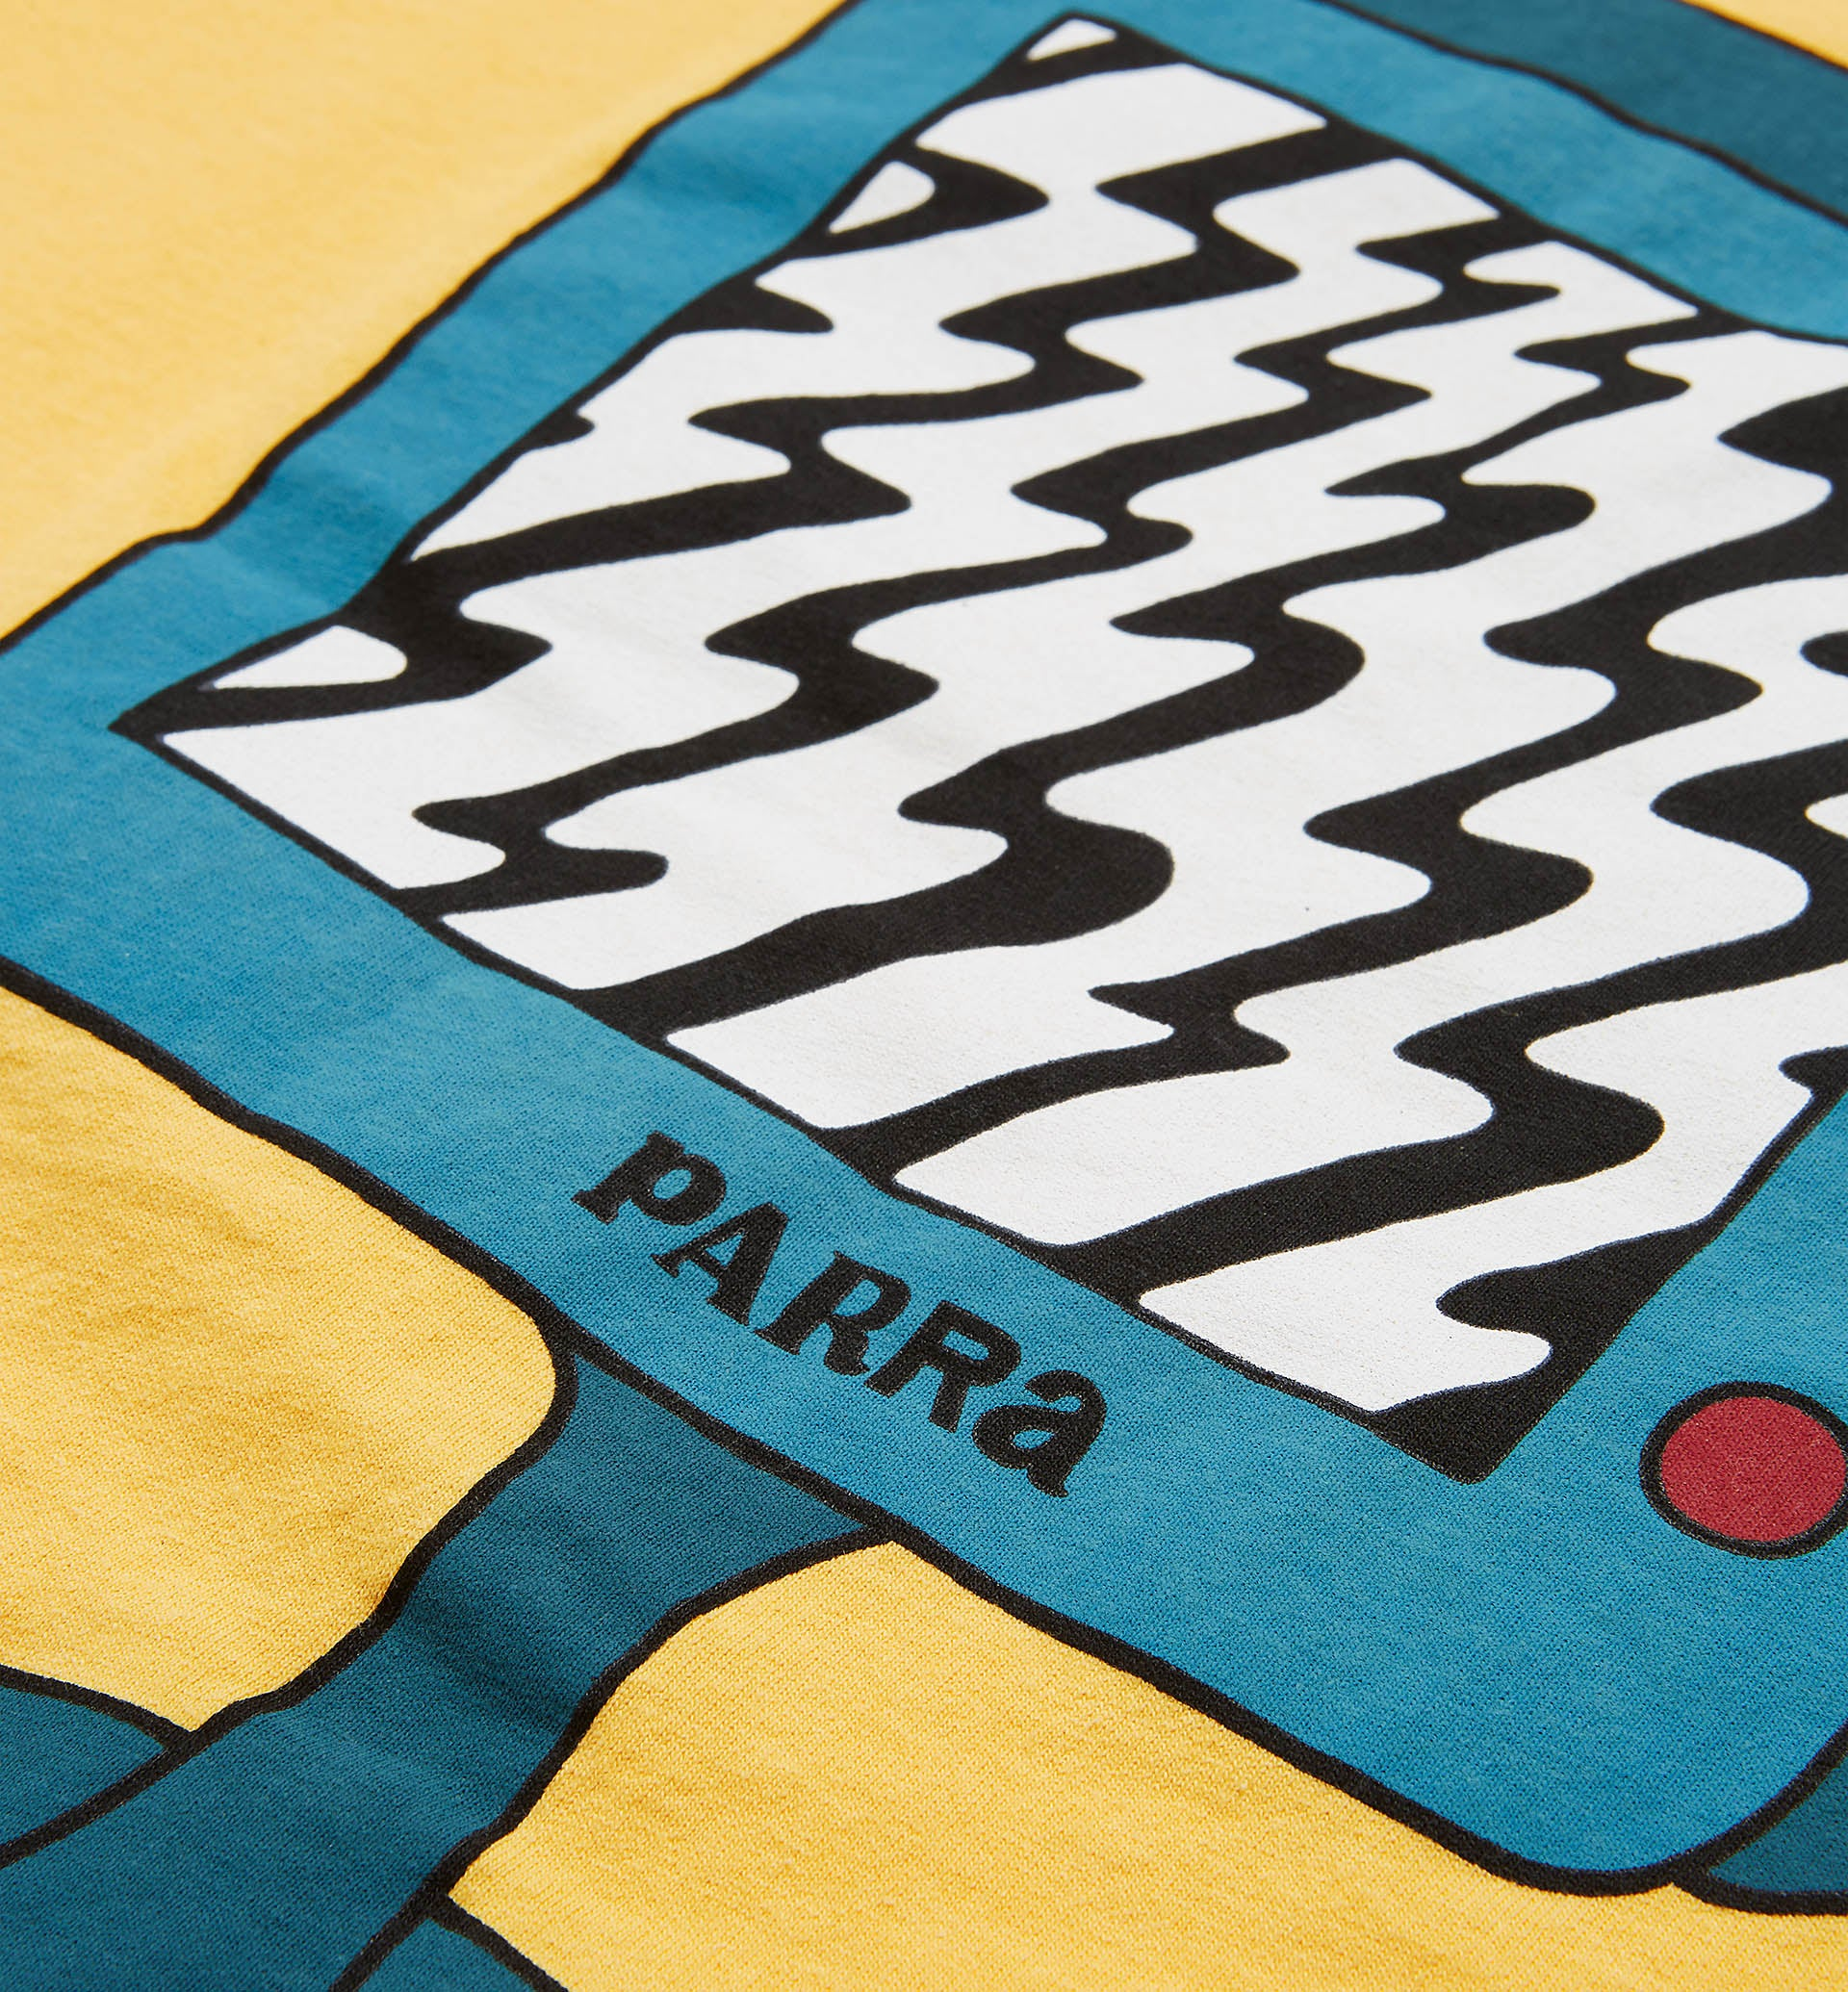 Parra - channel zero t-shirt